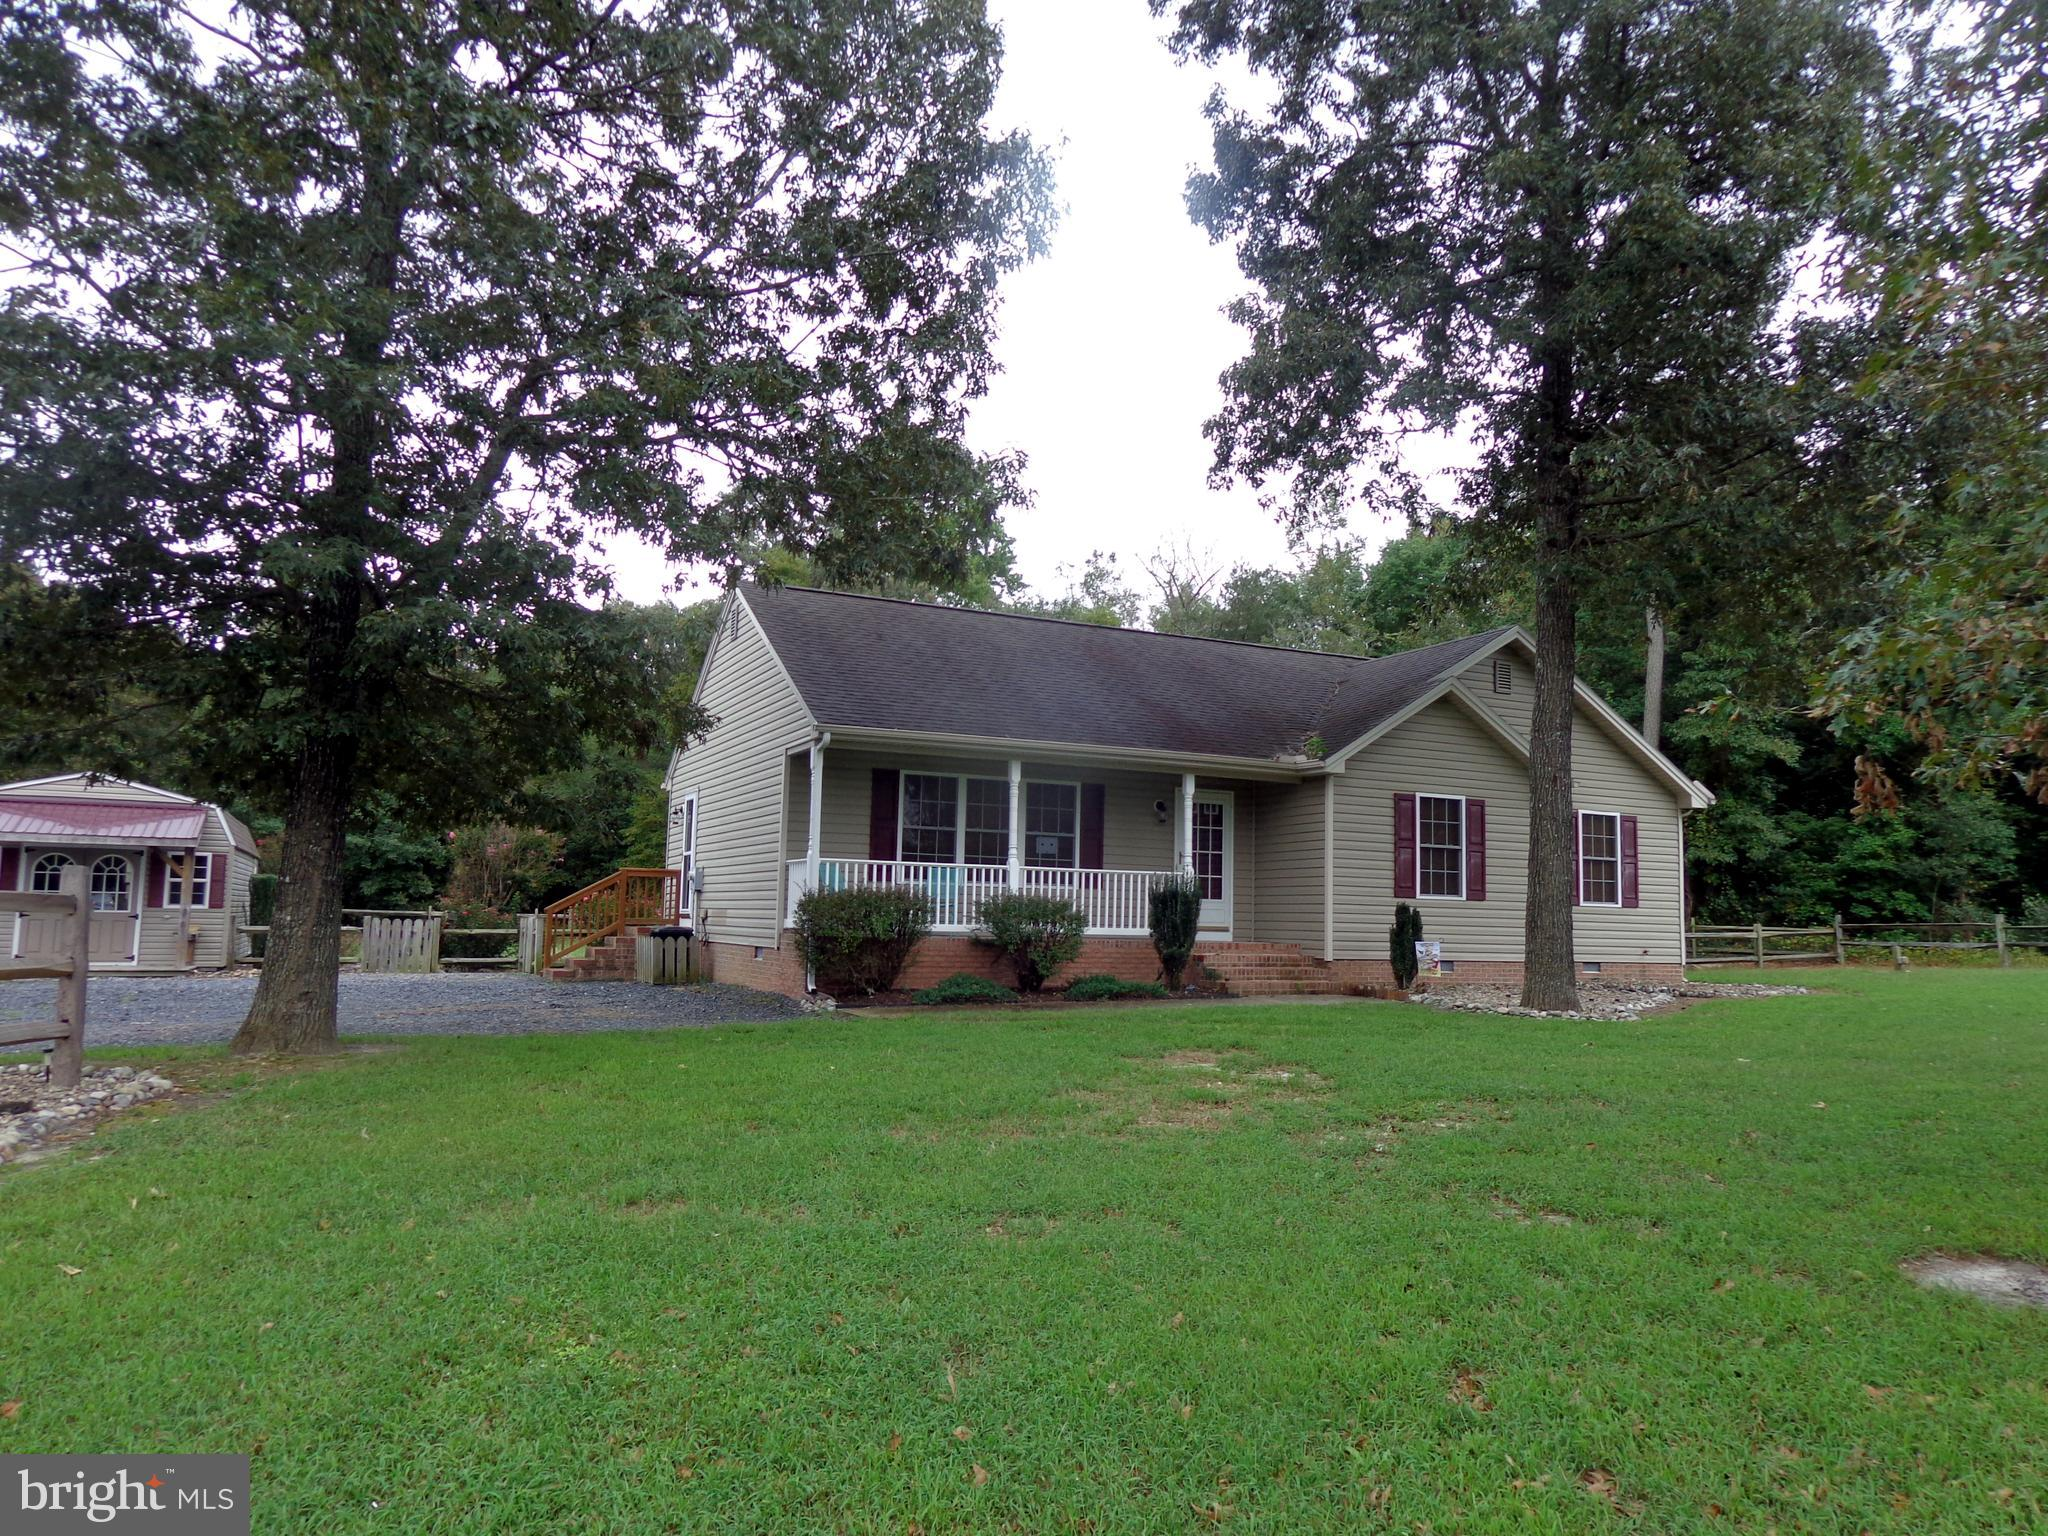 6165 MORRIS ROAD, PITTSVILLE, MD 21850